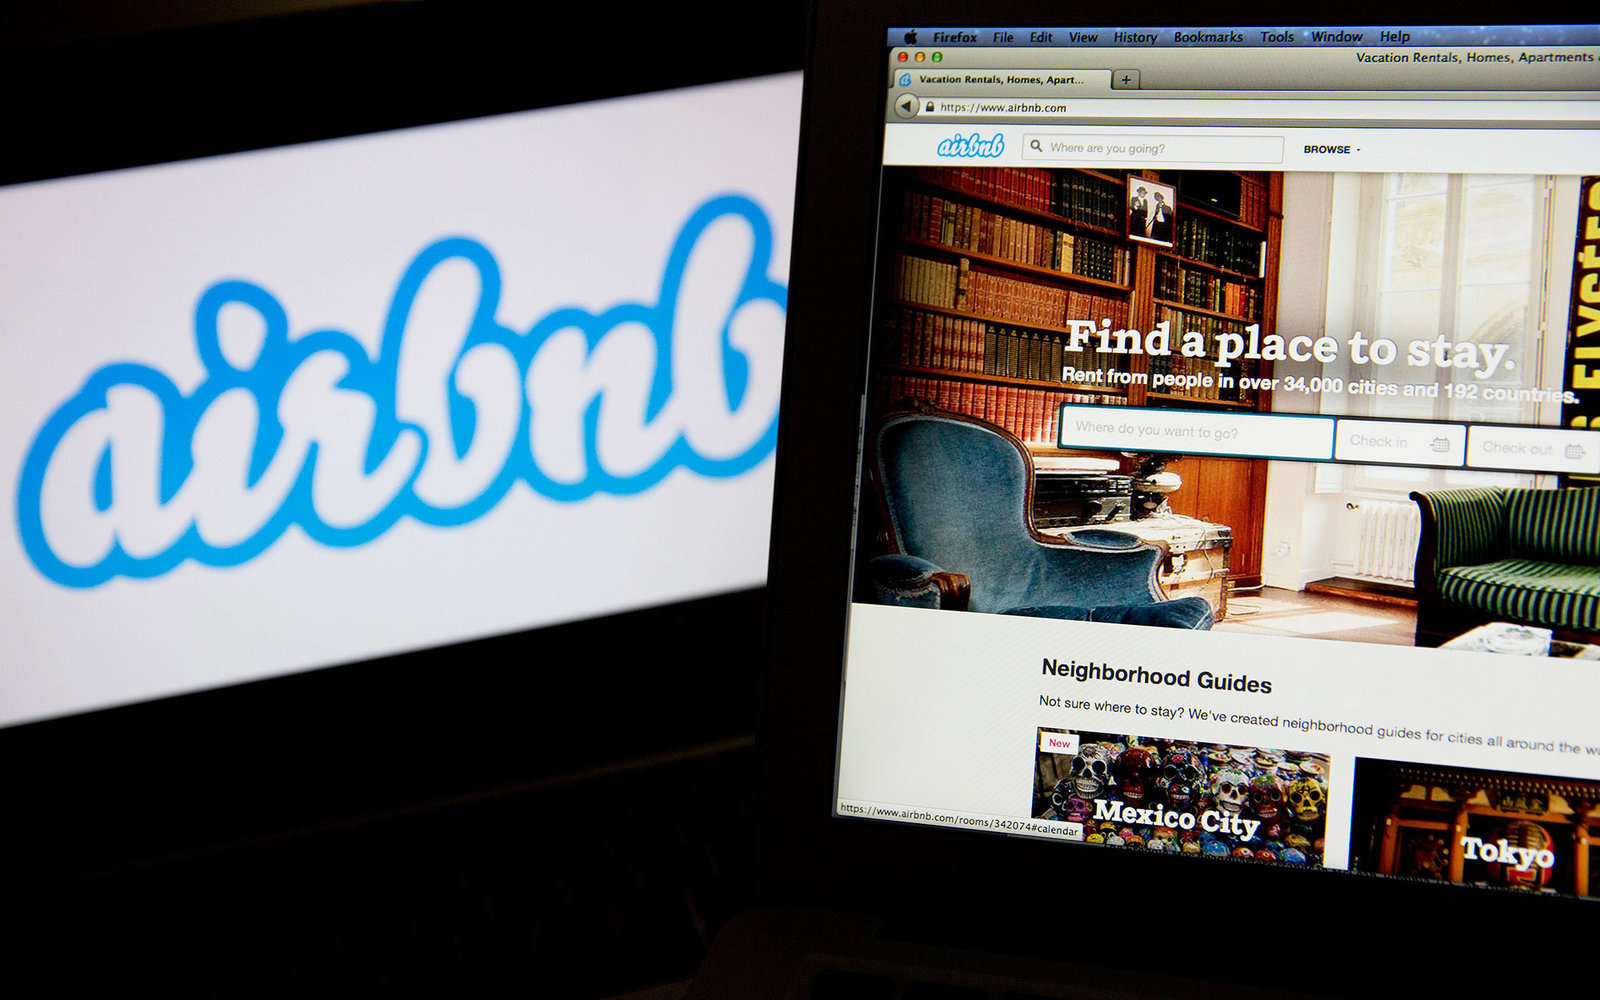 The Airbnb Inc. logo and website are displayed on laptop computers in this arranged photograph in Washington, D.C., U.S., on Friday, March 21, 2014. Airbnb Inc. is raising money from investors including TPG Capital in a financing round that would value th